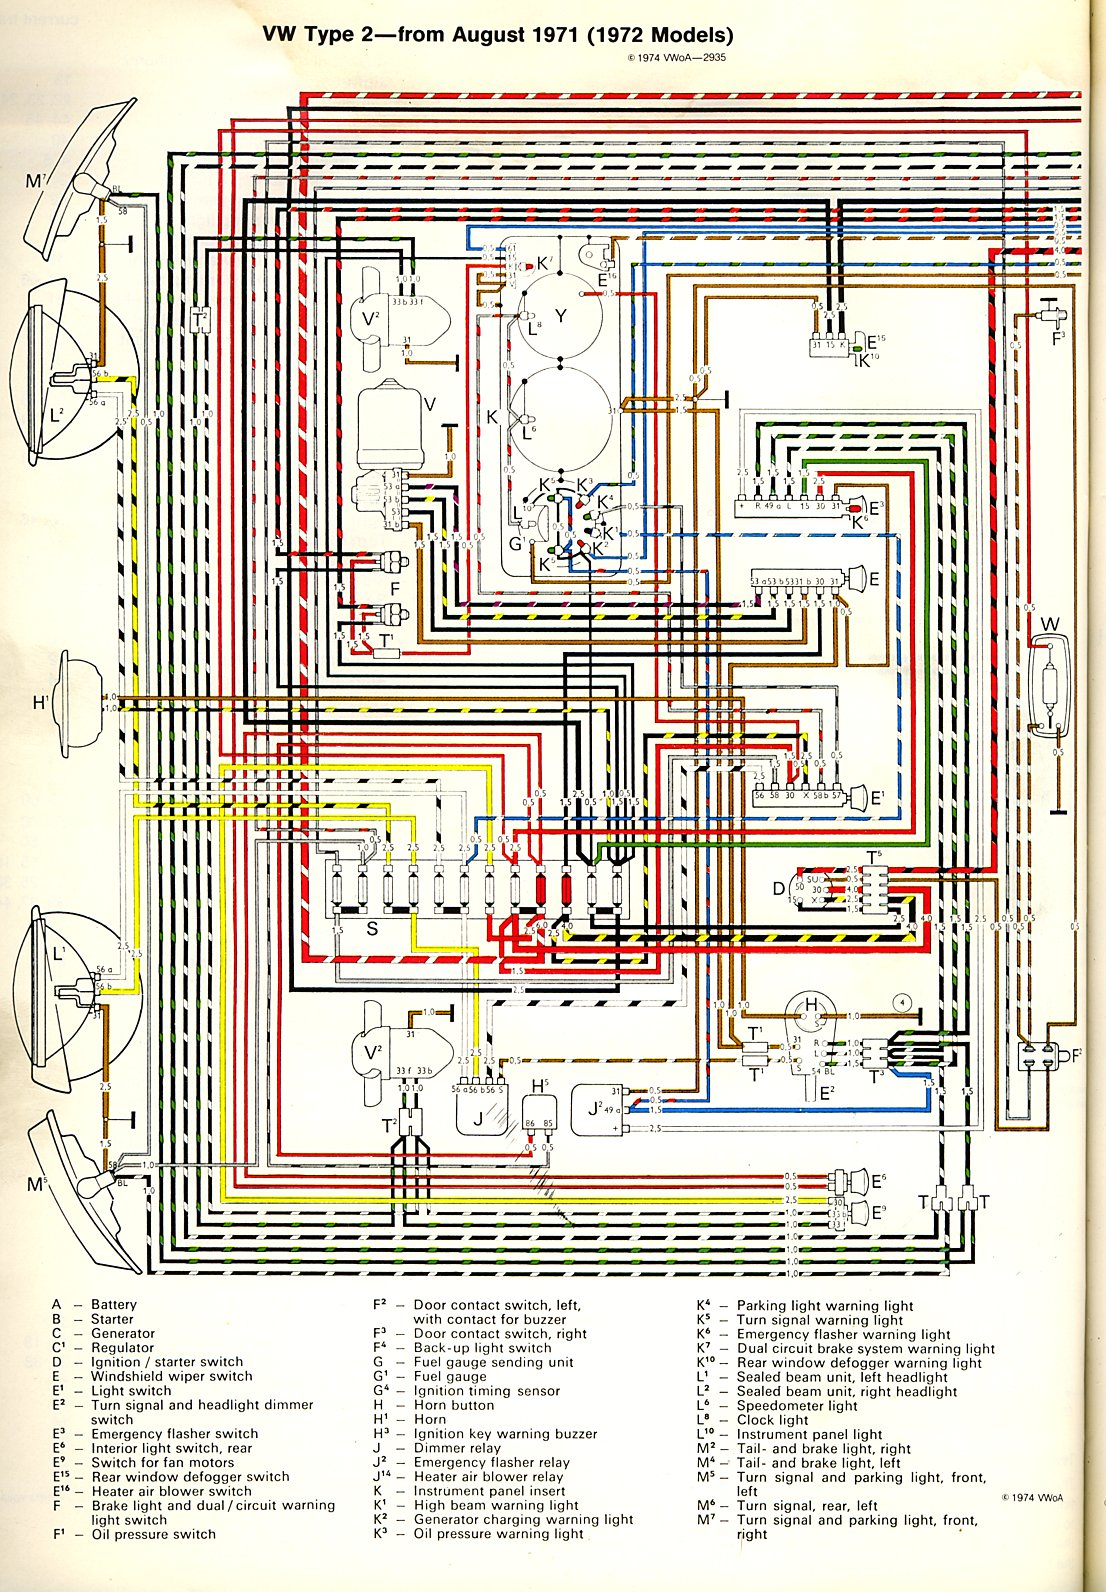 74 vw wiring diagram 1968 vw beetle wiring diagram images 1968 vw beetle wiring 1972 vw beetle wiring thegoldenbug en